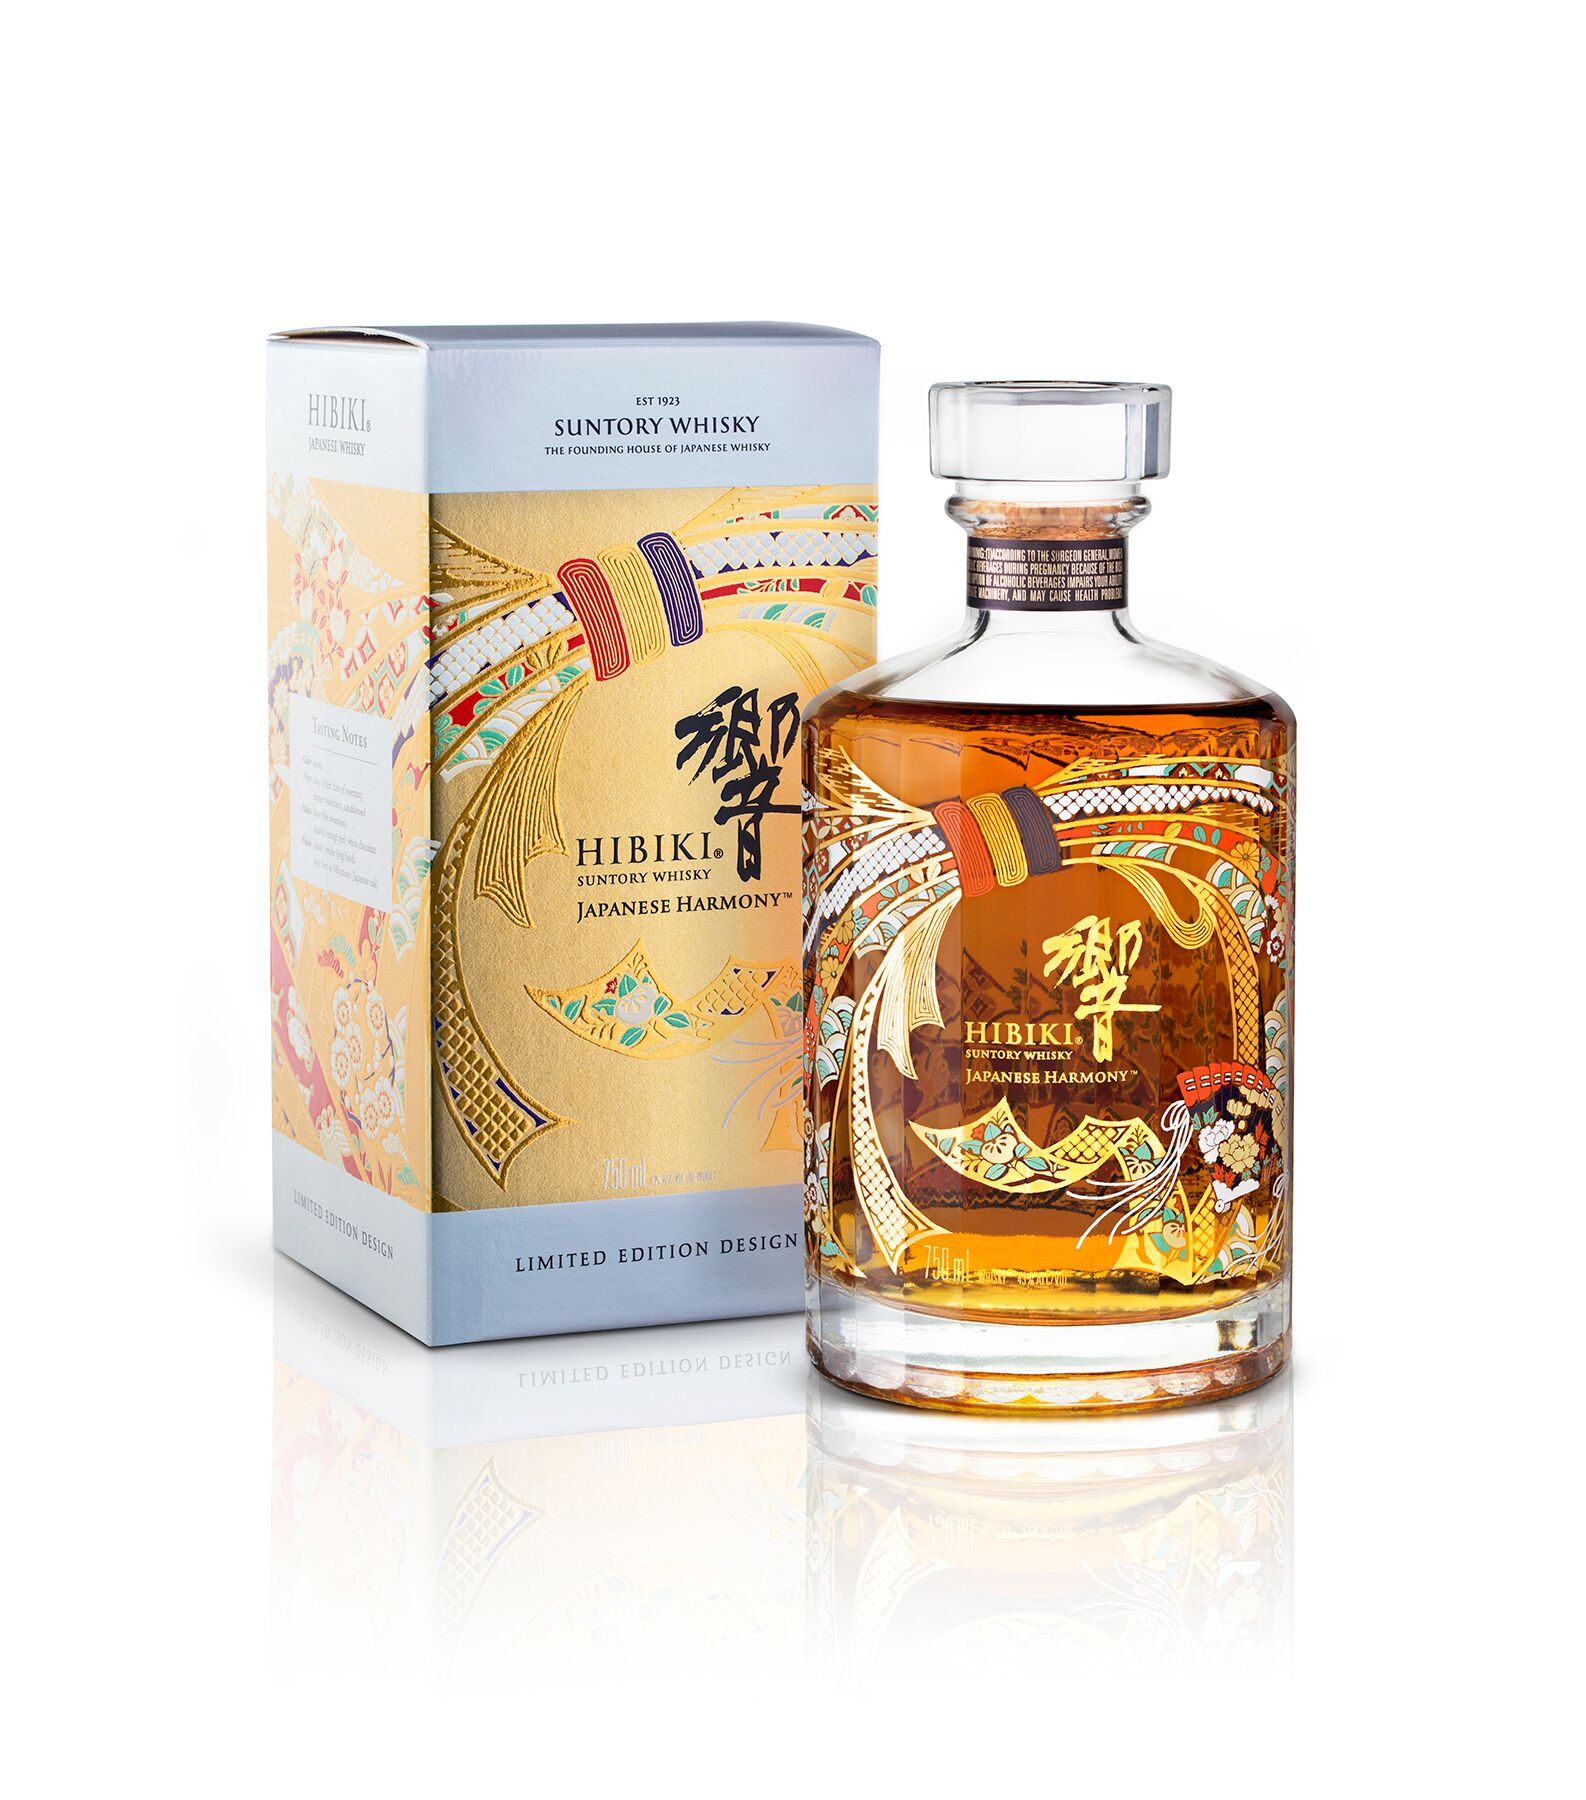 Suntory describes Hibikik Japanese Harmony as having a honey-like sweetness with hints of candied orange peel and white chocolate. The finish is subtle, with a hint of Japanese oak.